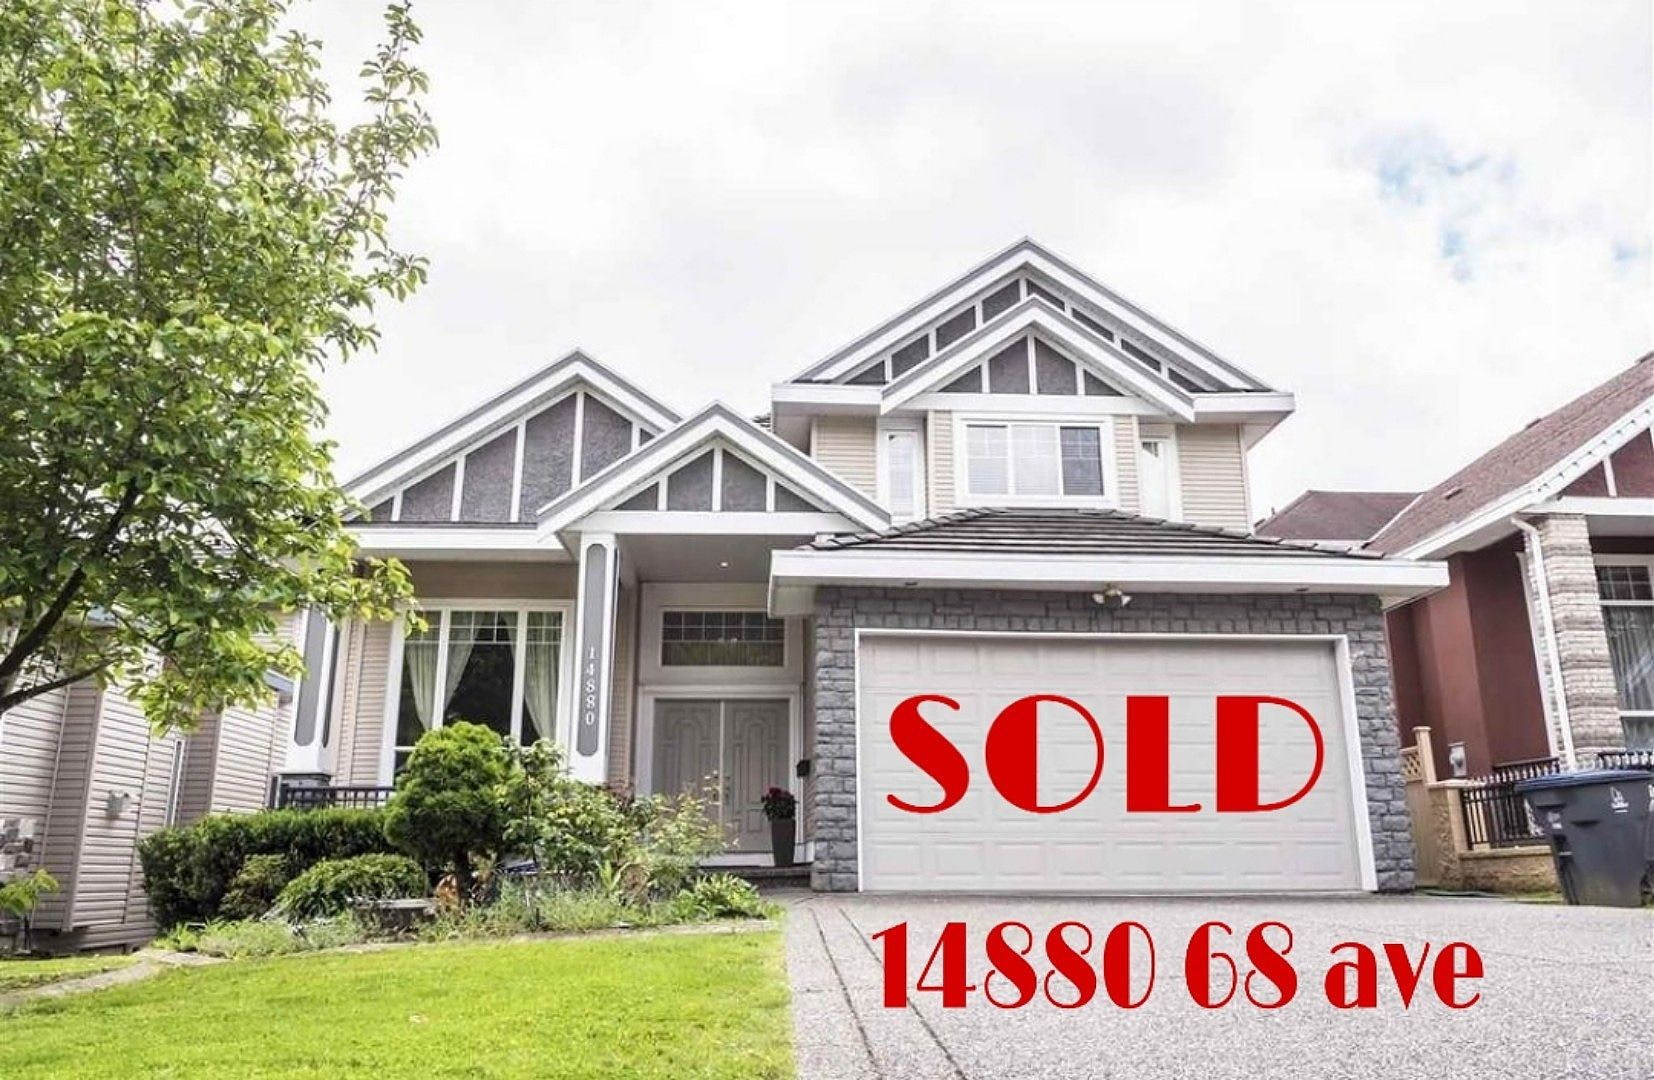 Main Photo: 14880 68ave: House for sale : MLS®# r2404910